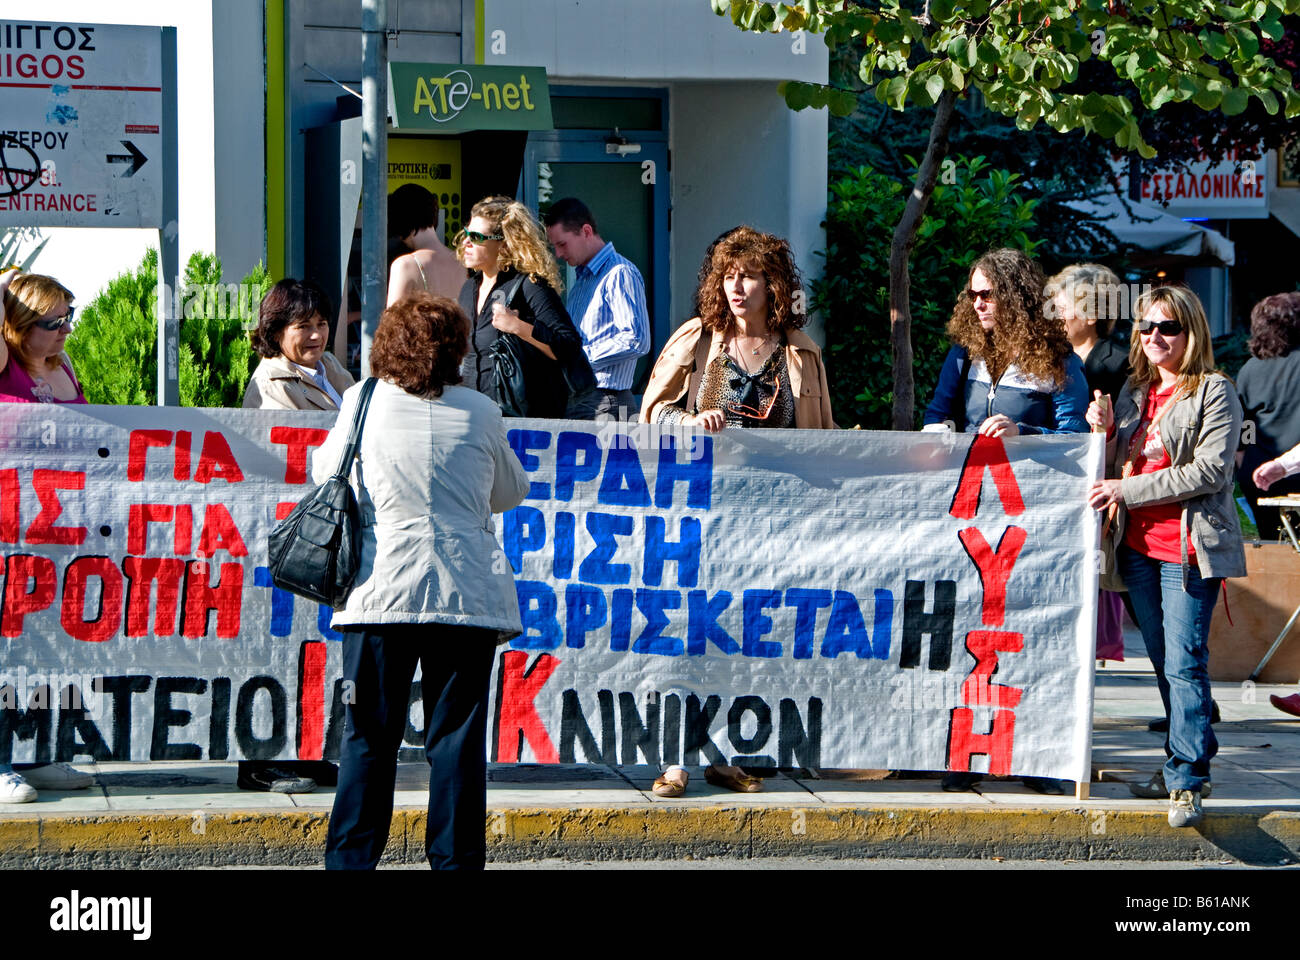 demonstration protest march Athens Greek Greece - Stock Image